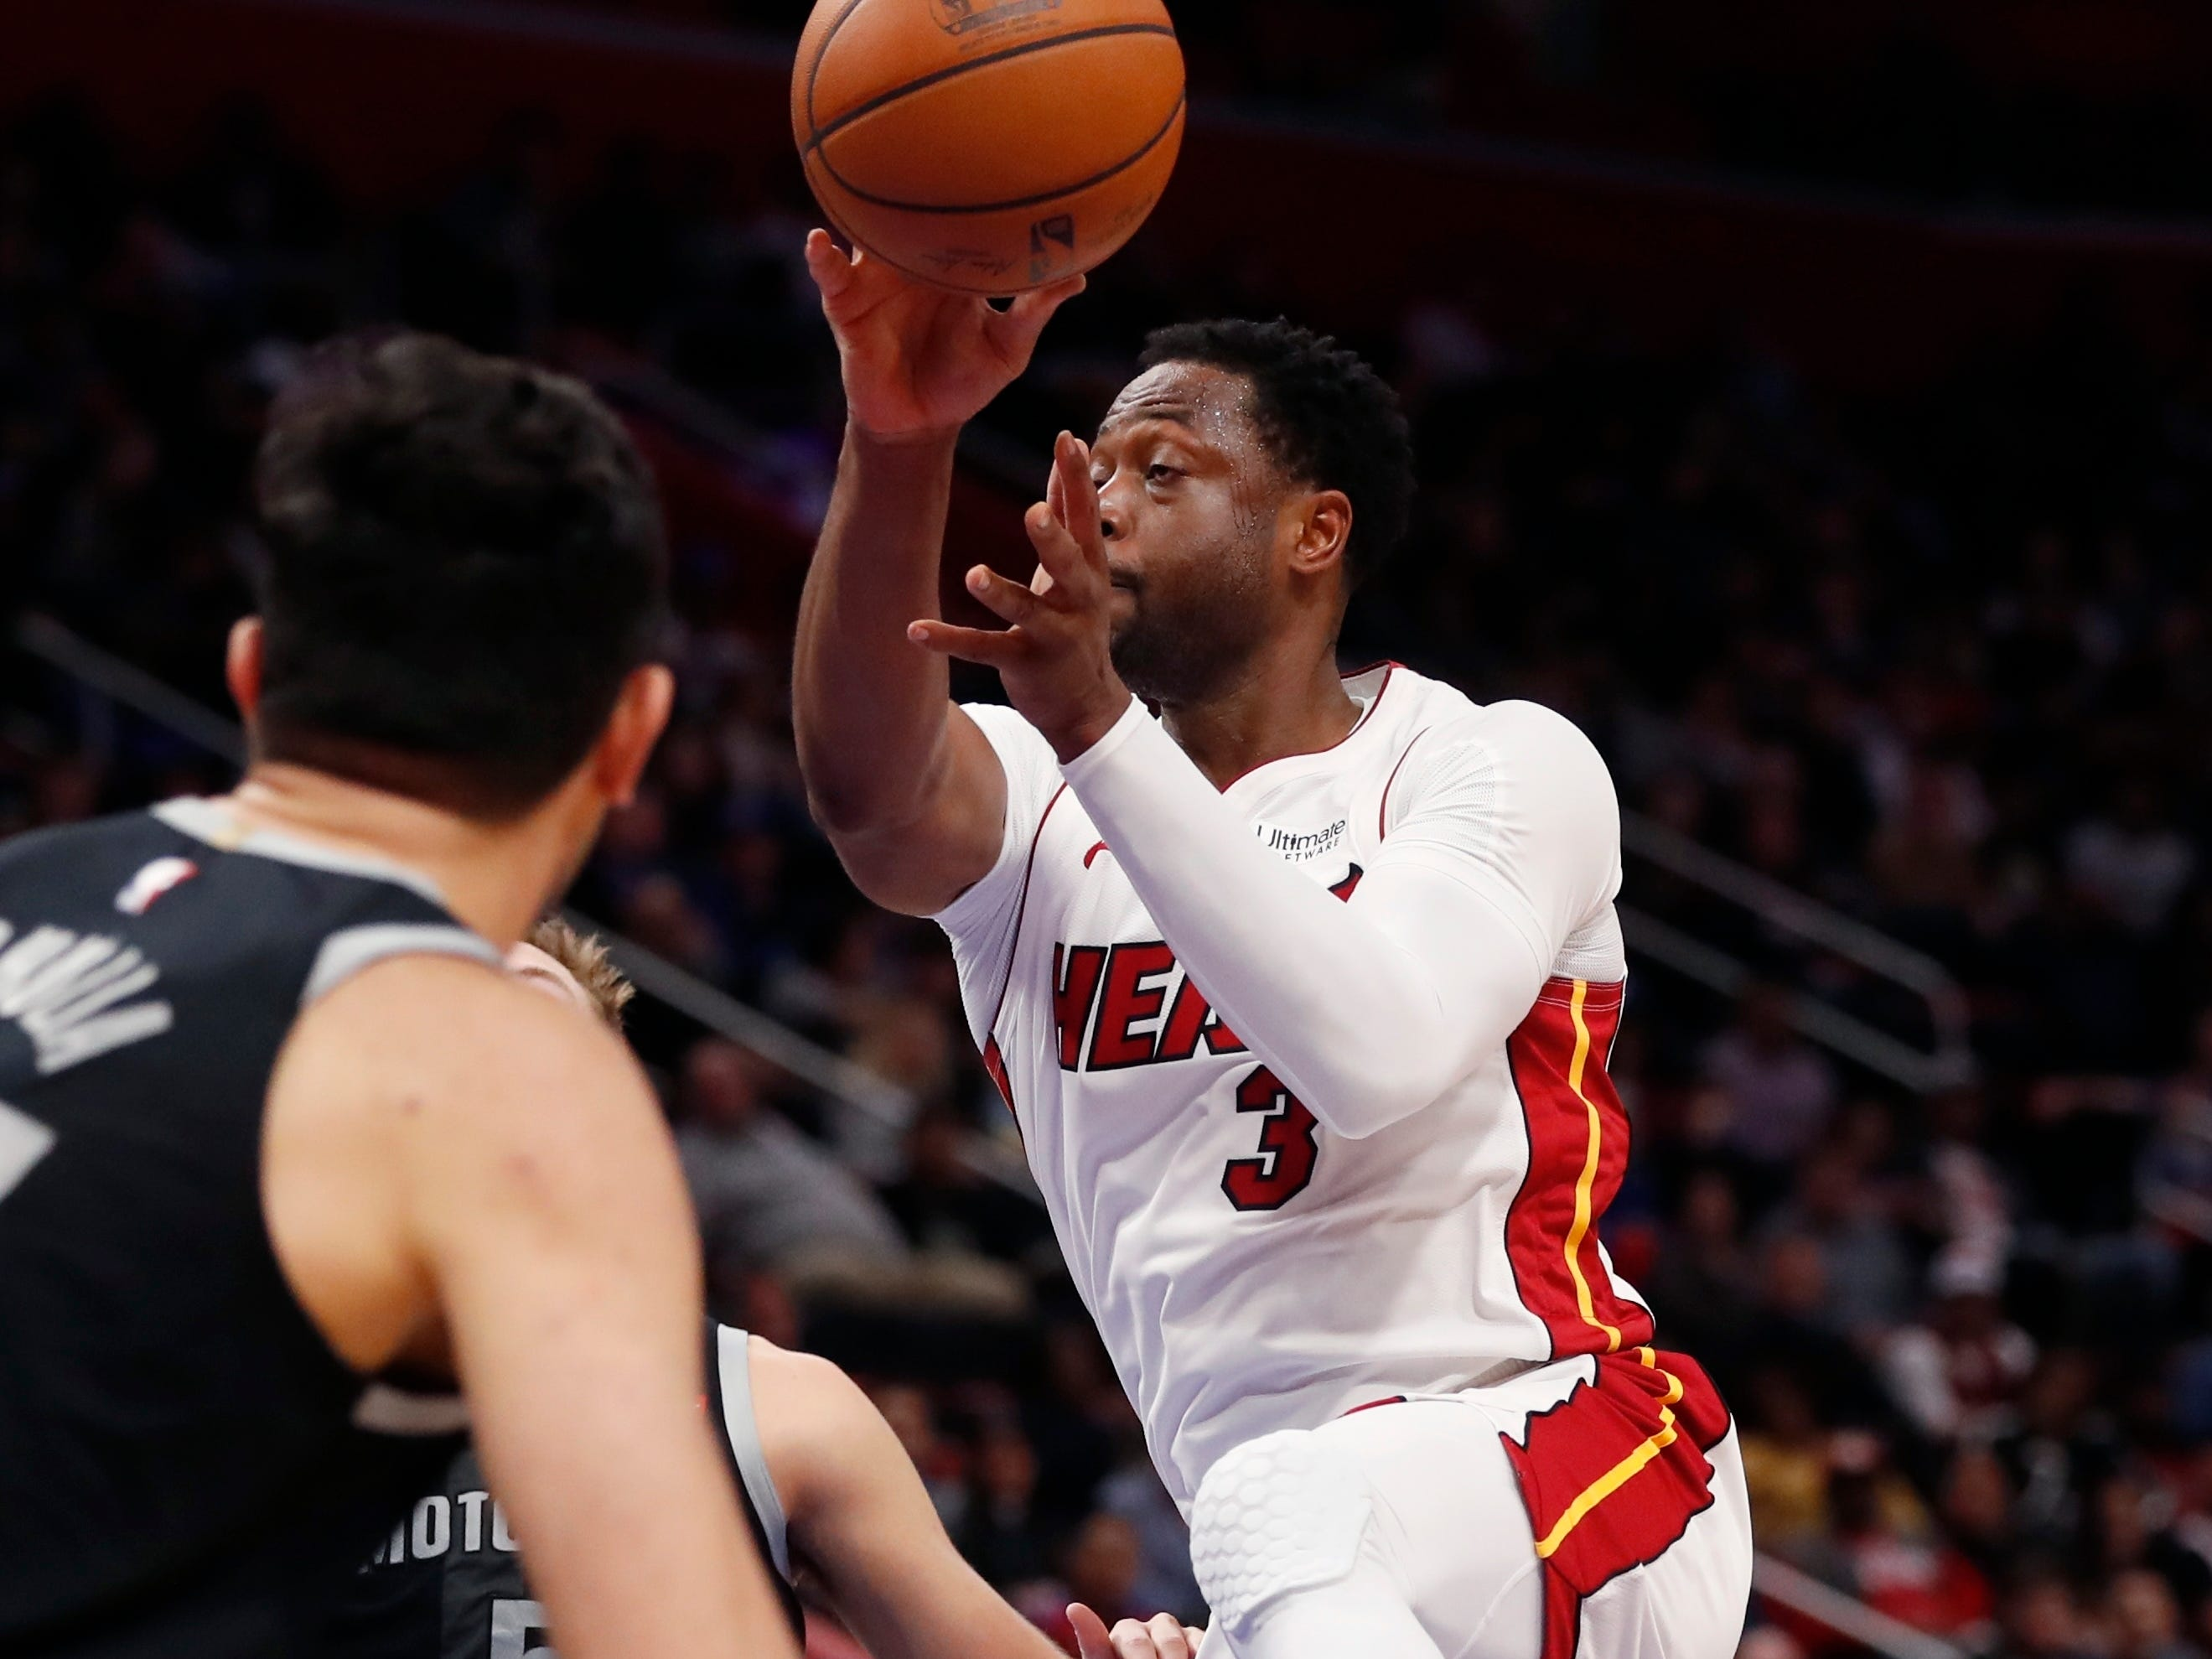 Miami Heat guard Dwyane Wade passes during the second half.